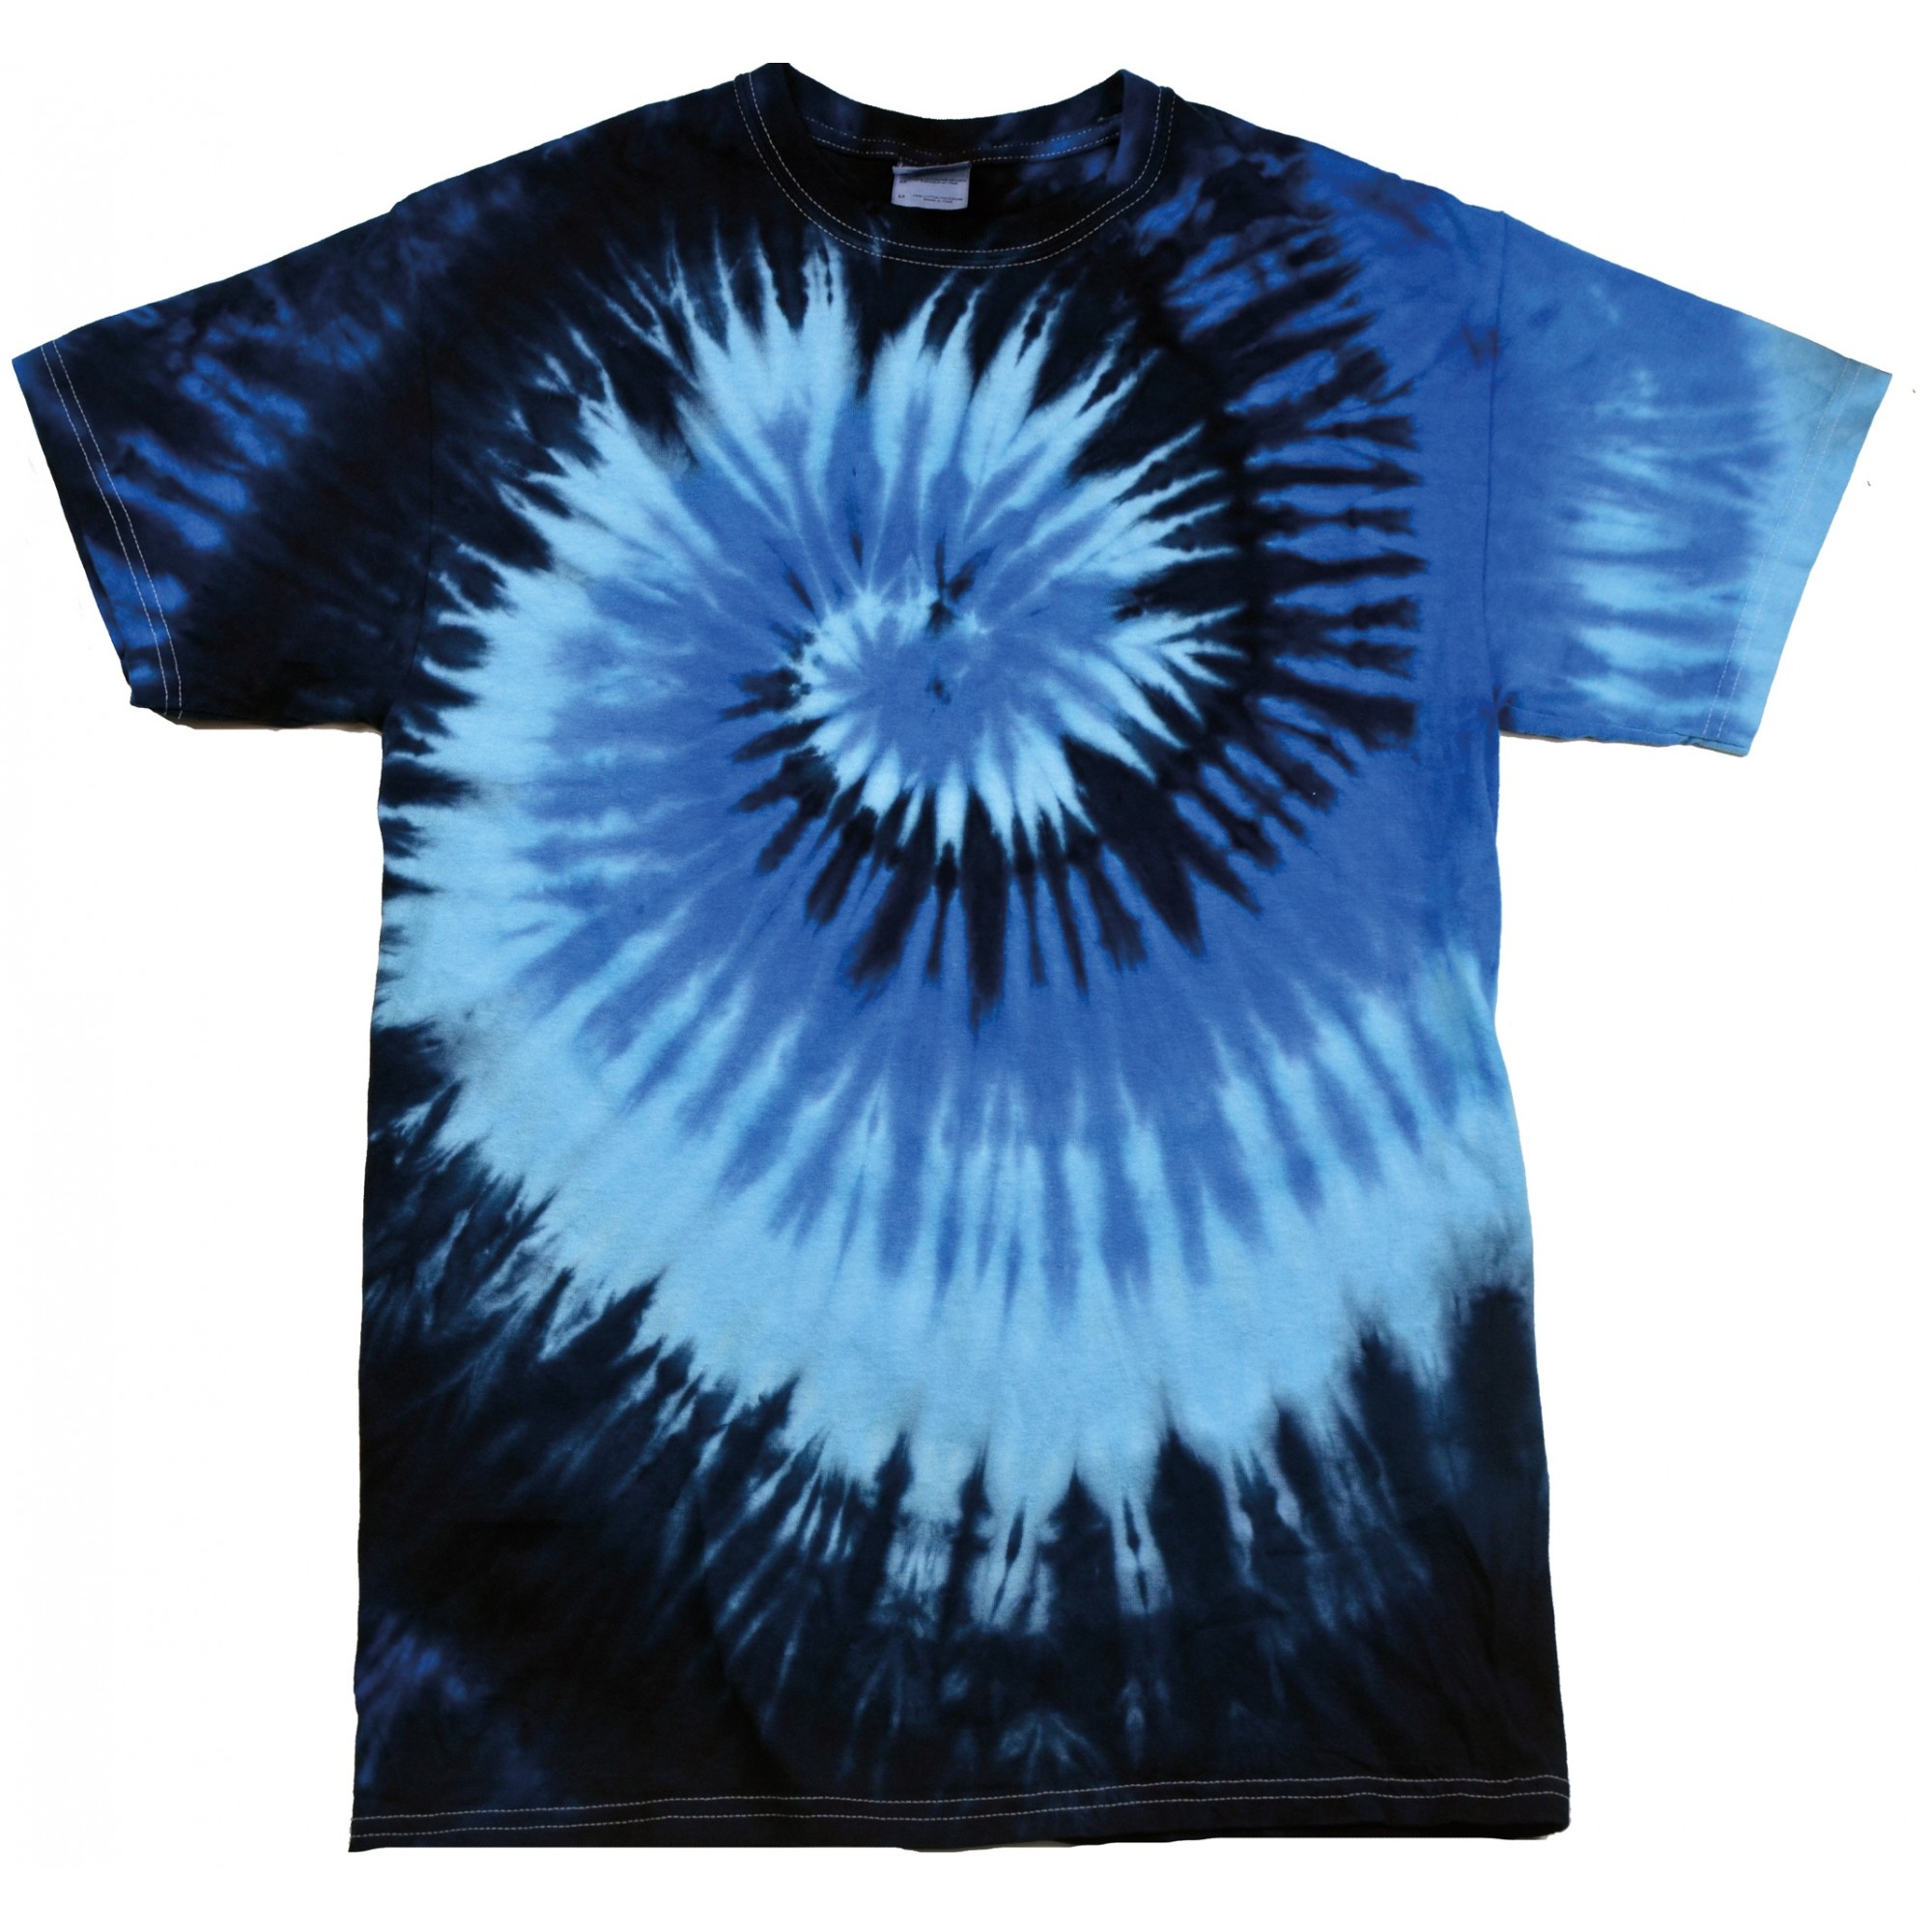 colortone womens ladies rainbow tie dye short sleeve heavyweight t shirt ebay. Black Bedroom Furniture Sets. Home Design Ideas